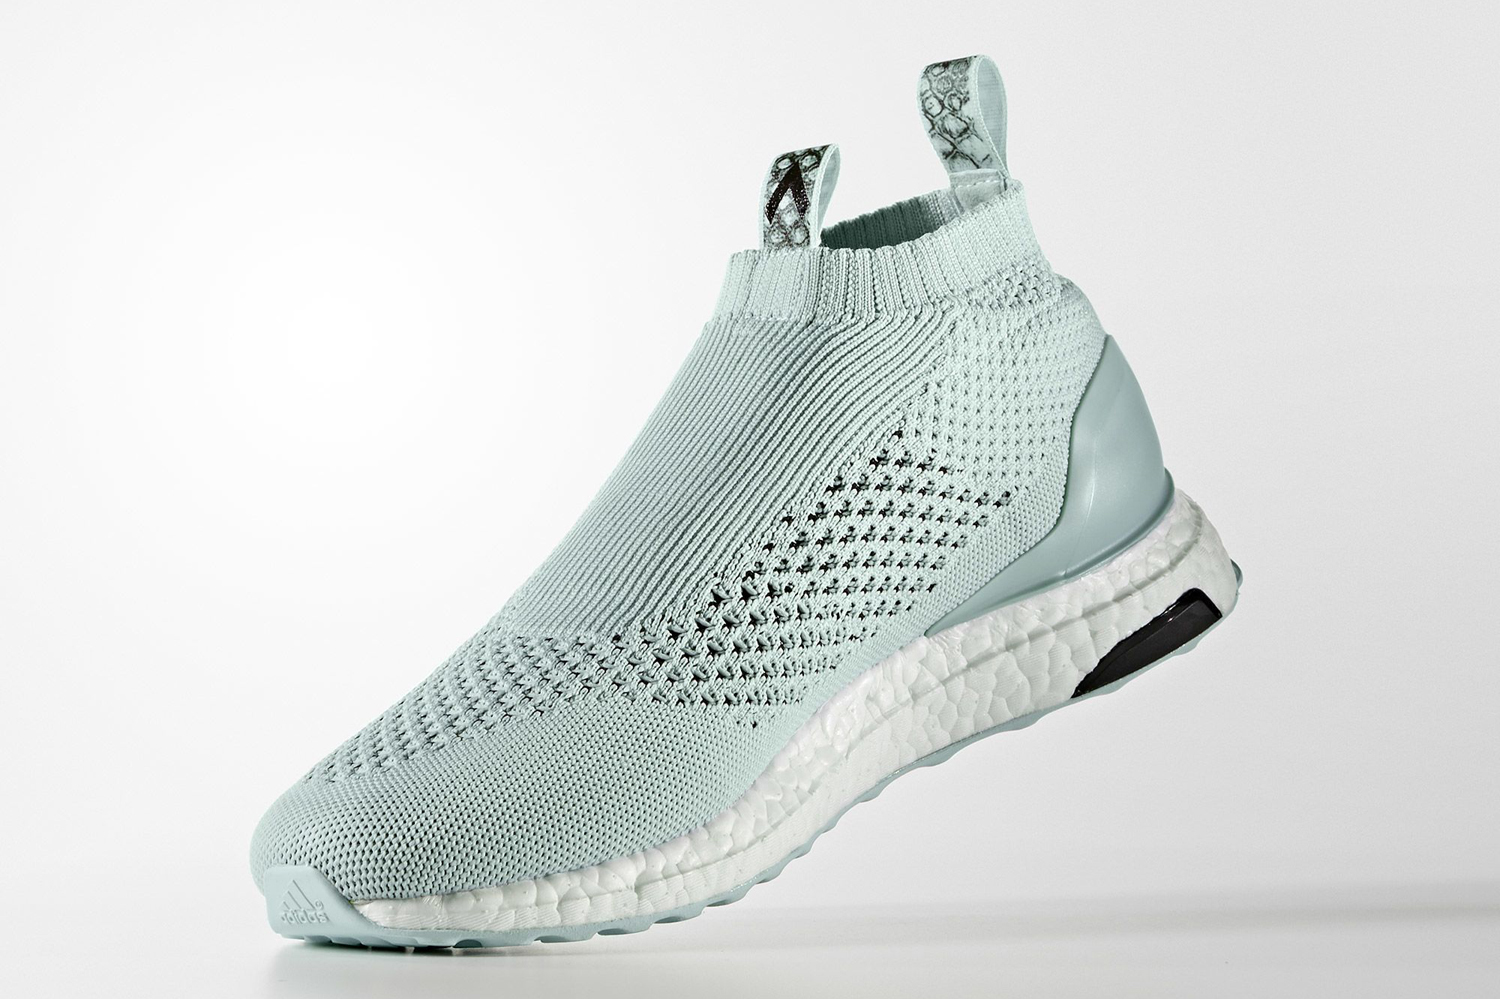 Adidas Ace 16 PureControl Ultra Boost mint green